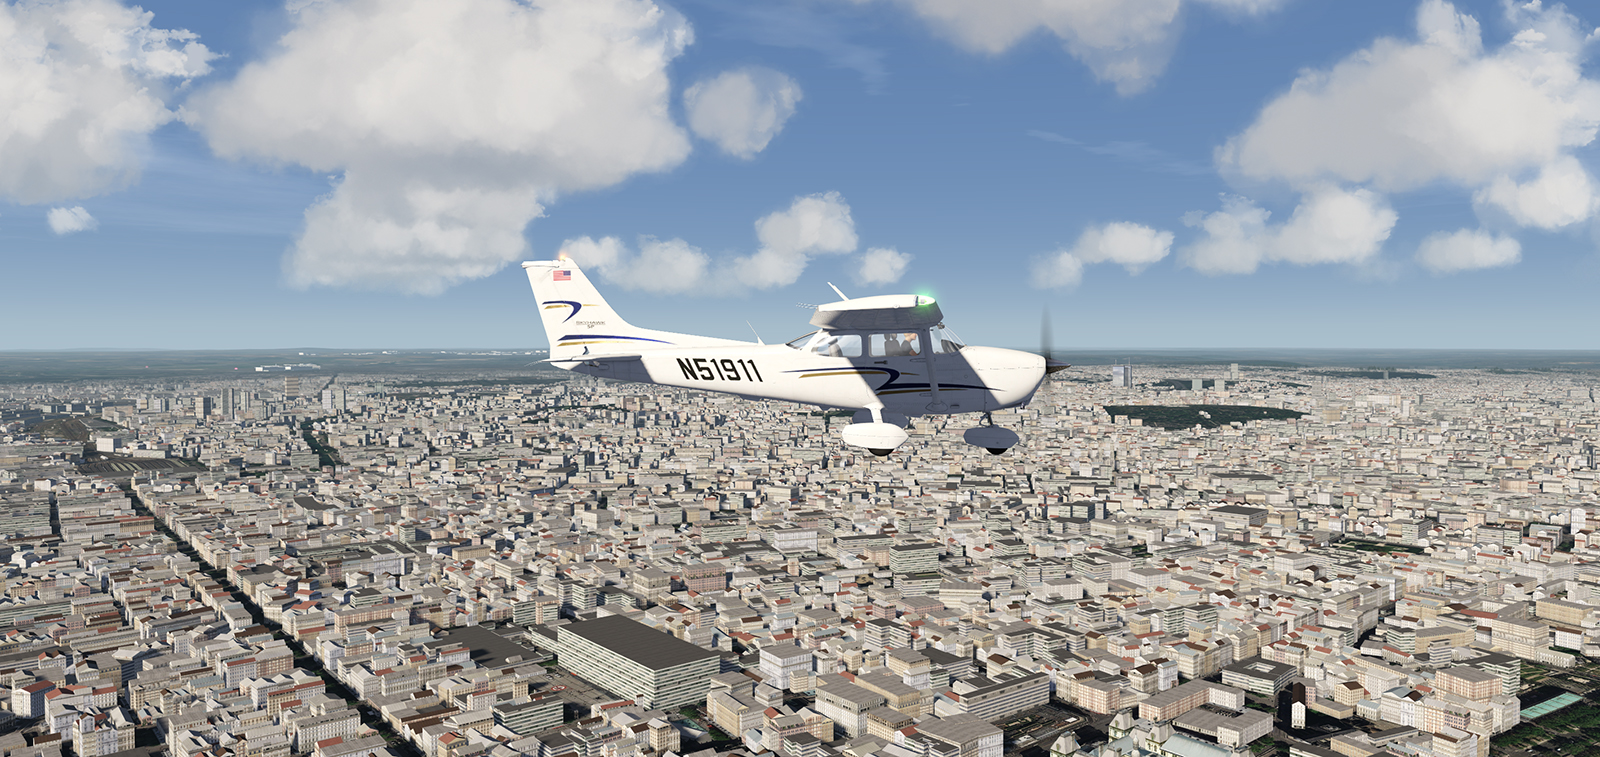 aerofly_fs_2_screenshot_49_20190920-0114